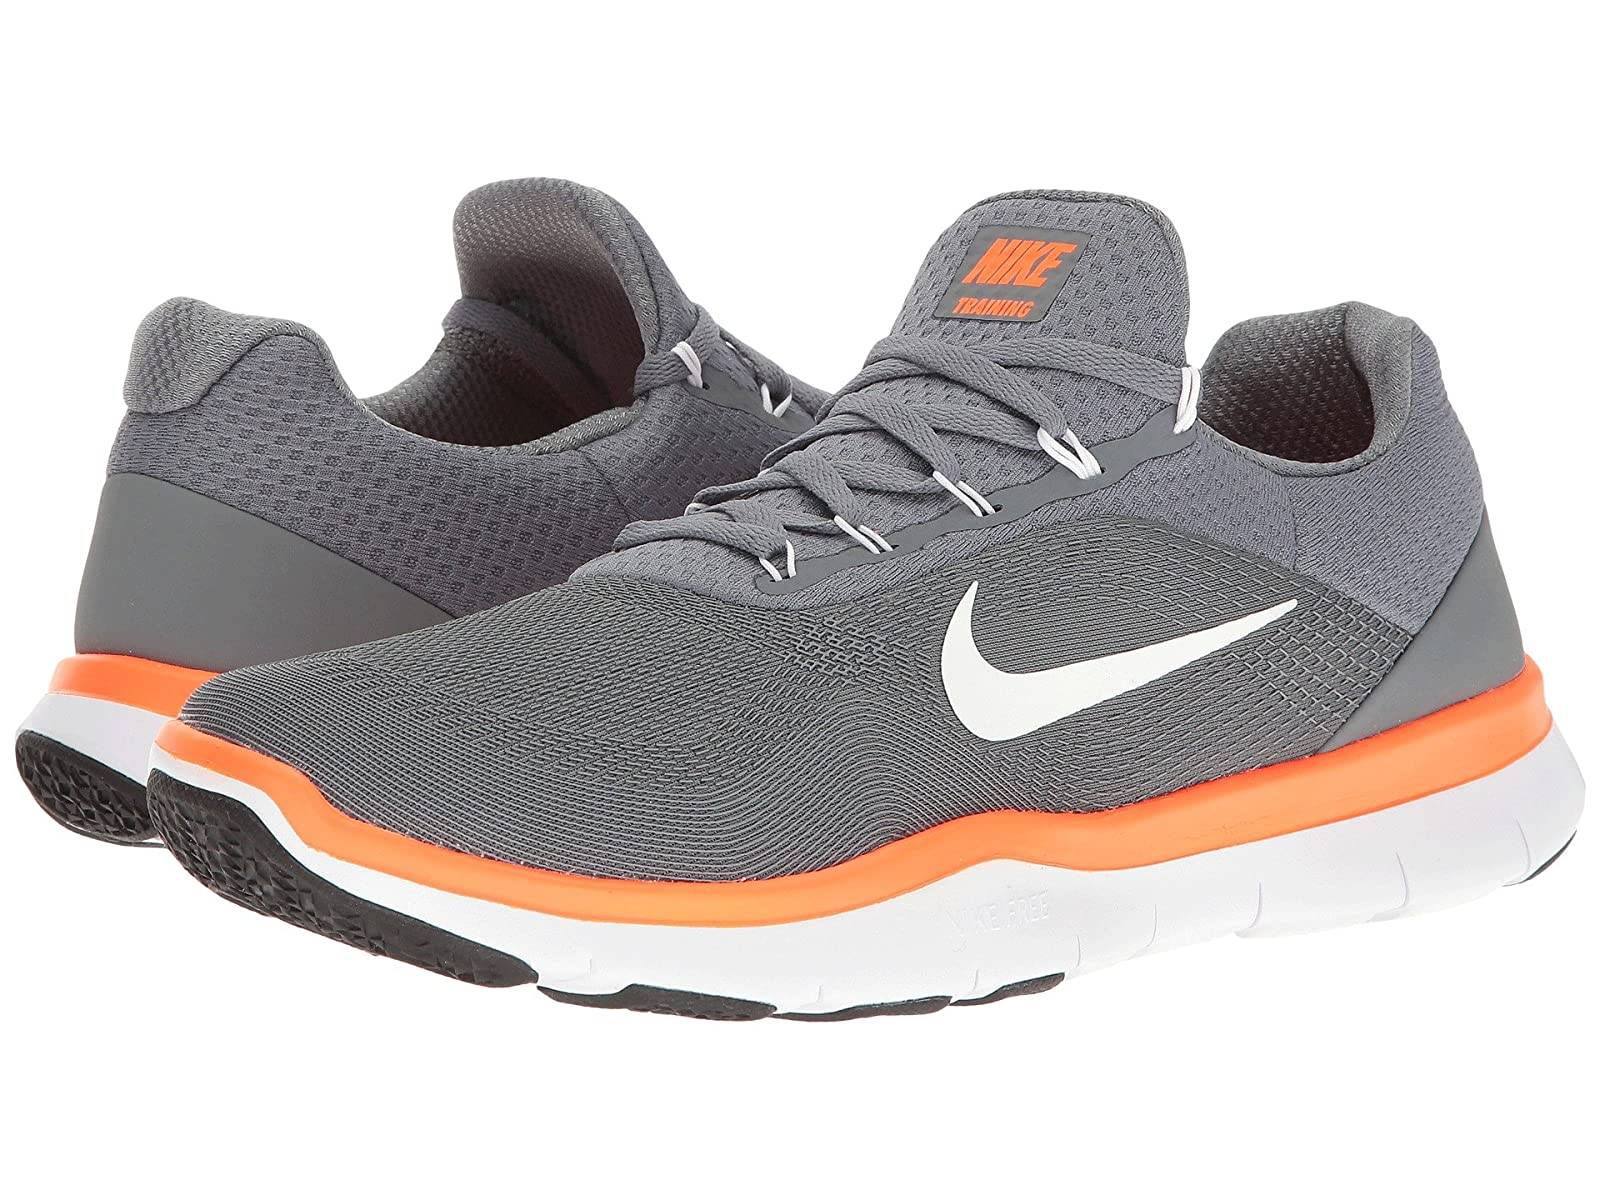 Nike Free Trainer v7Cheap and distinctive eye-catching shoes